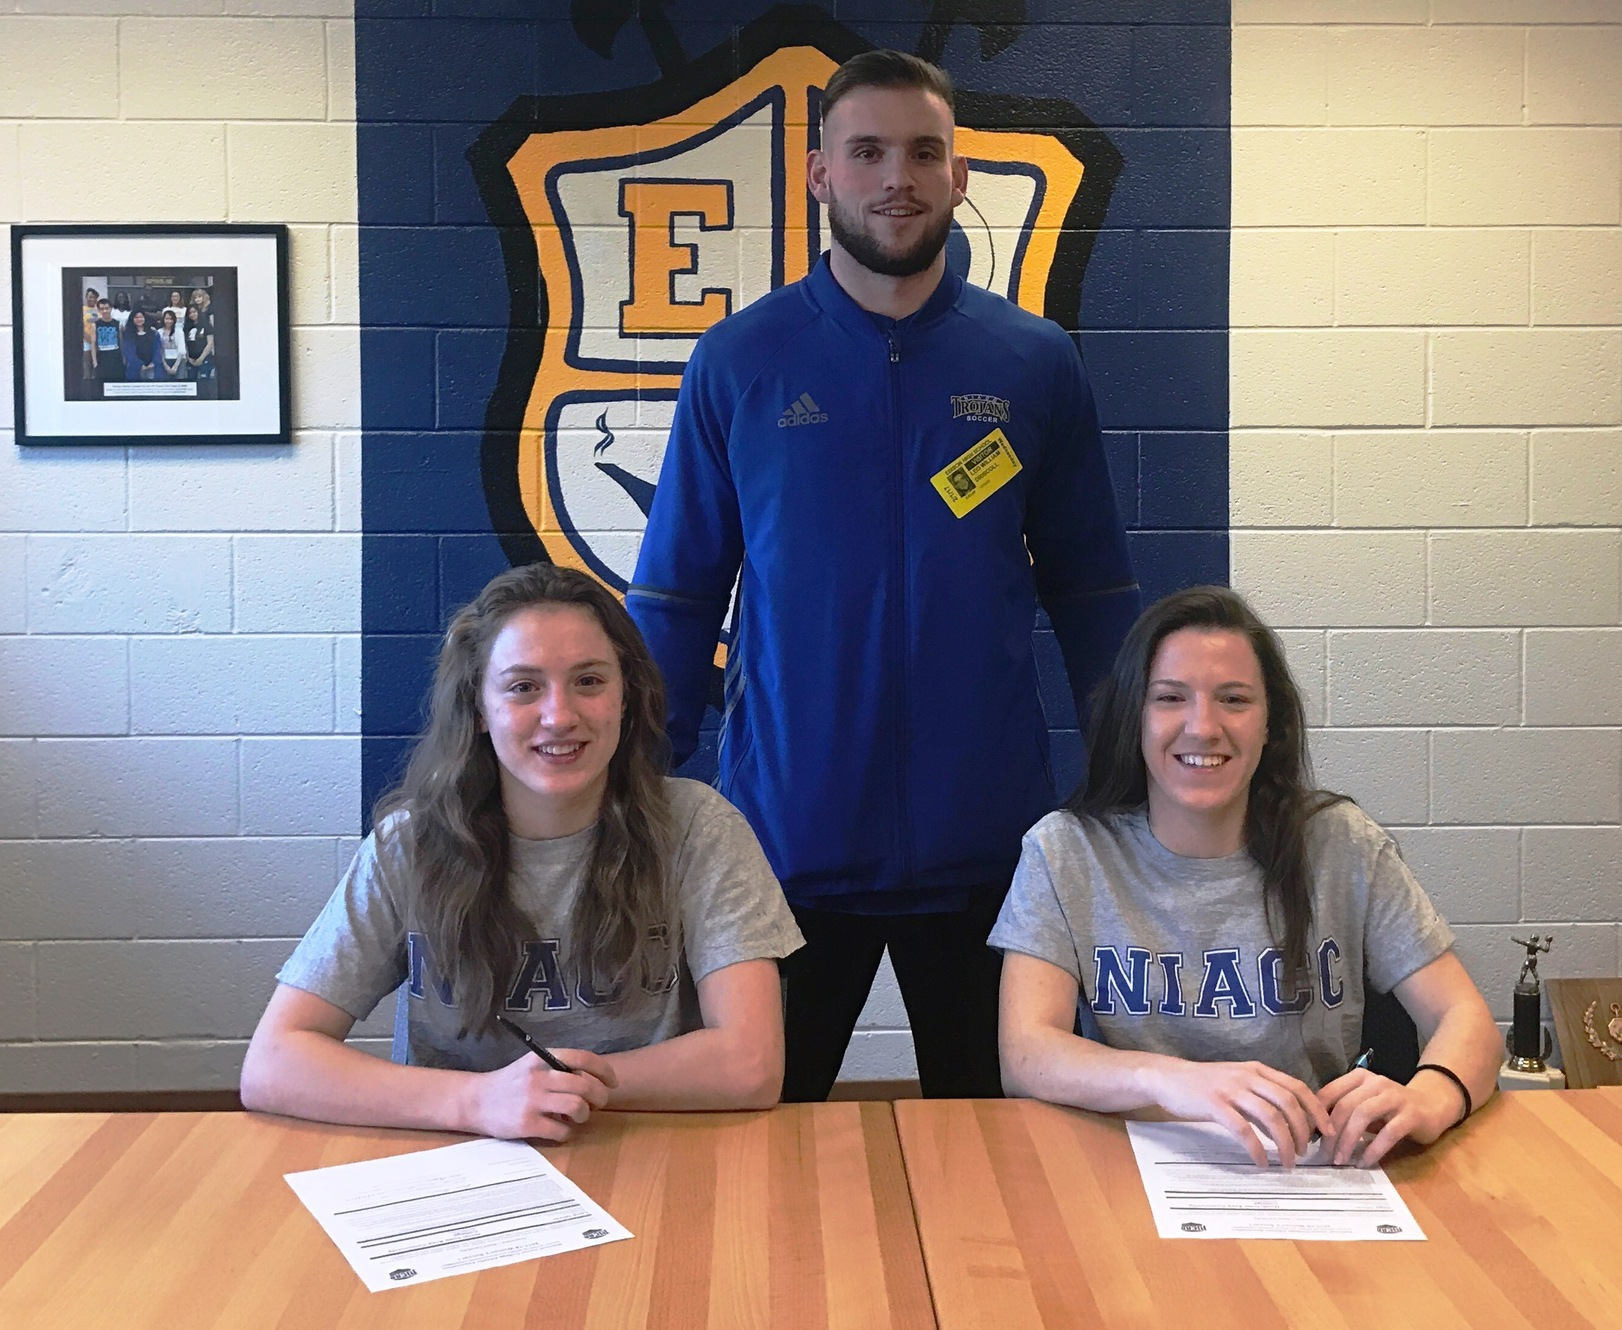 Lena Oliver (left) and Olga Oliver from Minneapolis recently signed a national letter of intent to play soccer at NIACC in the fall of 2017. NIACC coach pictured is Leo Driscoll.